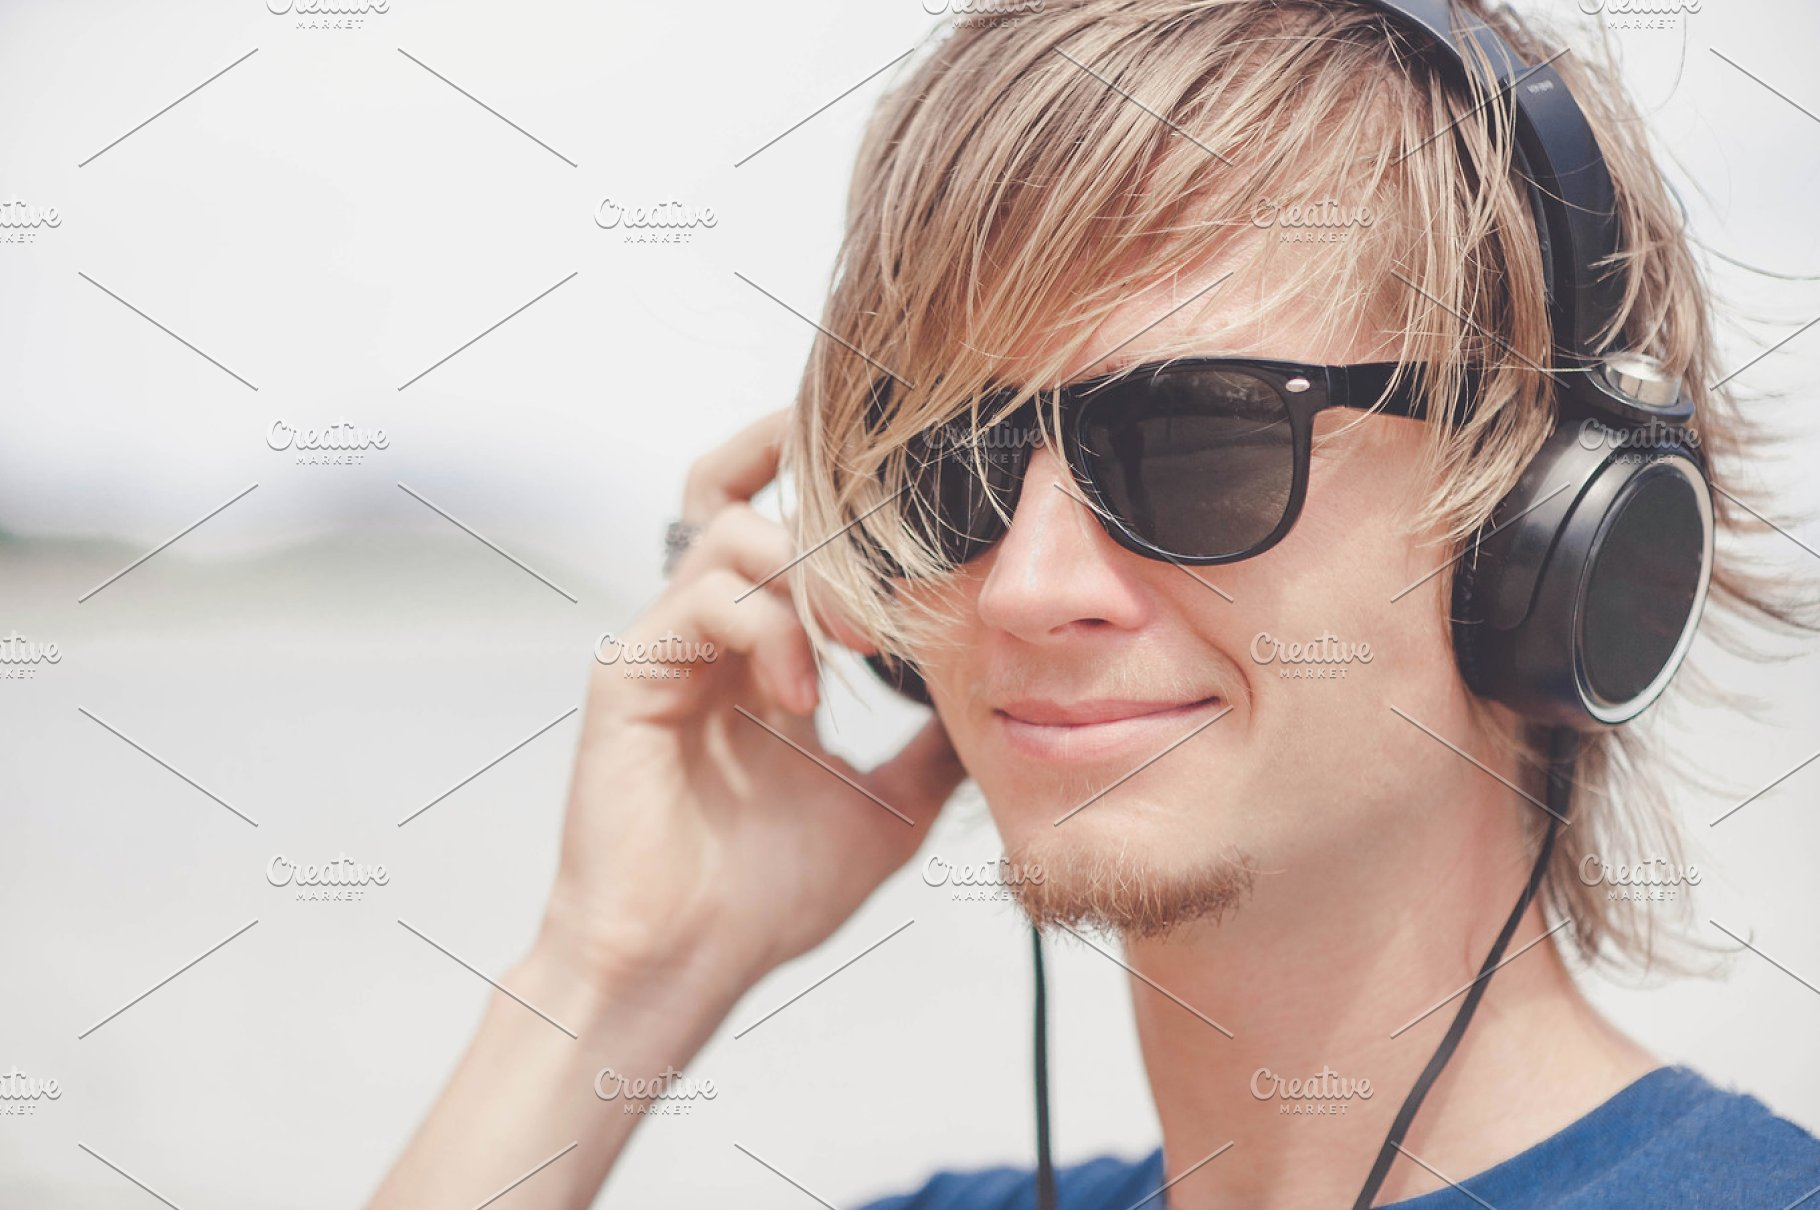 d34b6ccdfab6 Portrait of young man in headphones and sunglasses at the beach ...